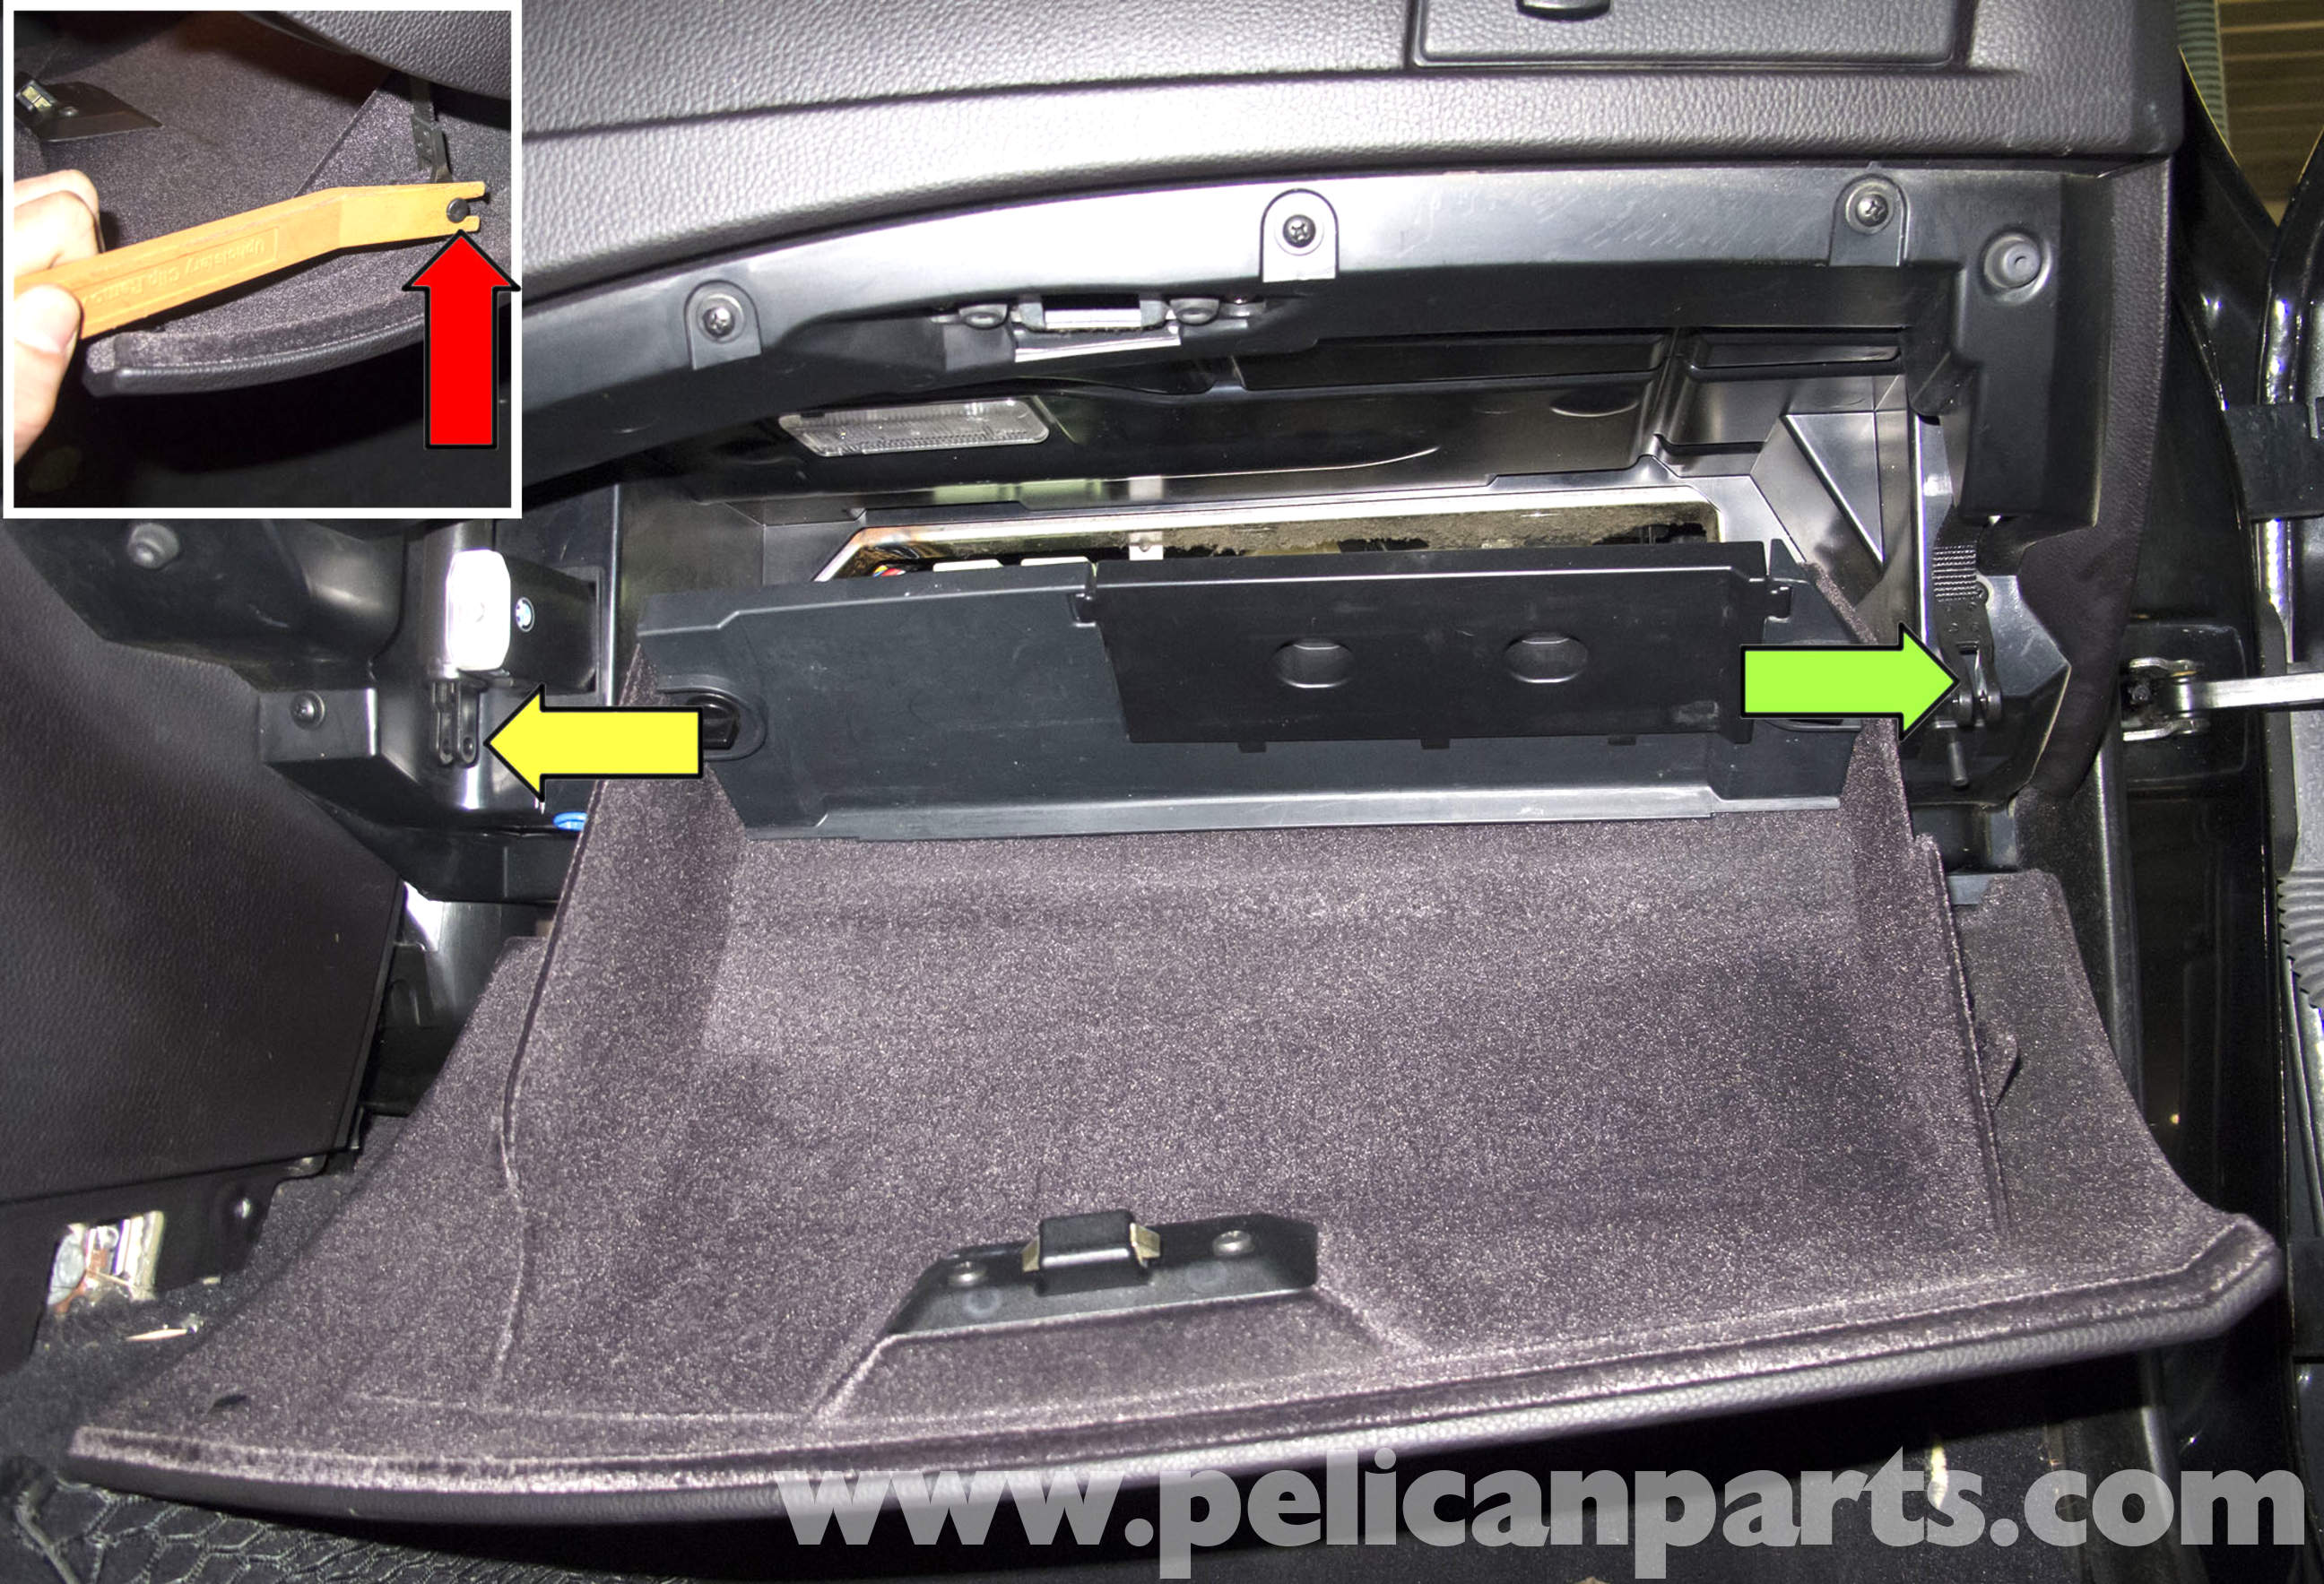 Outstanding Fuse Box Location 2009 X5 BMW Pictures - Best Image Wire ...